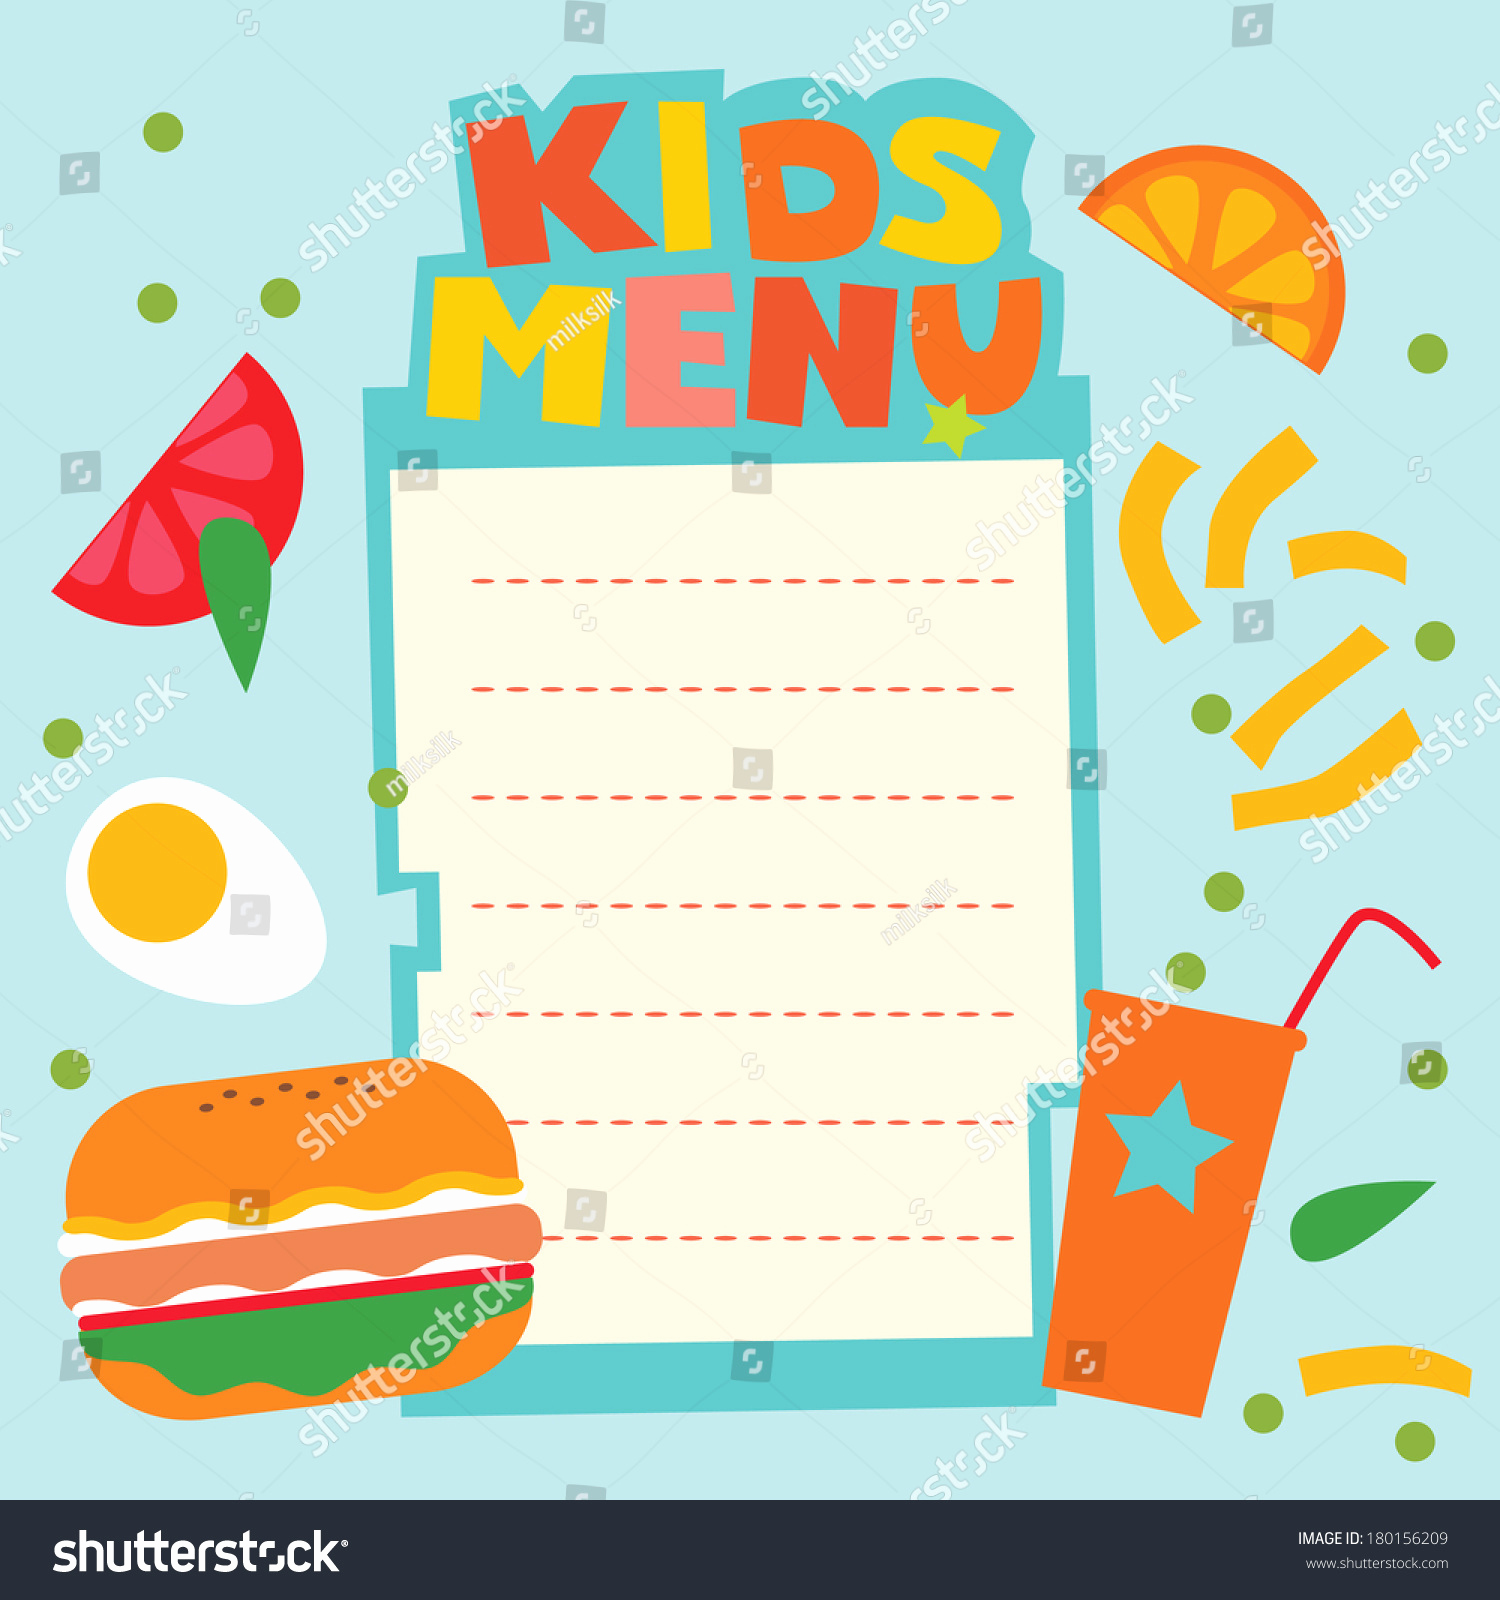 Free Kids Menu Template Beautiful Kids Menu Template Stock Vector Shutterstock